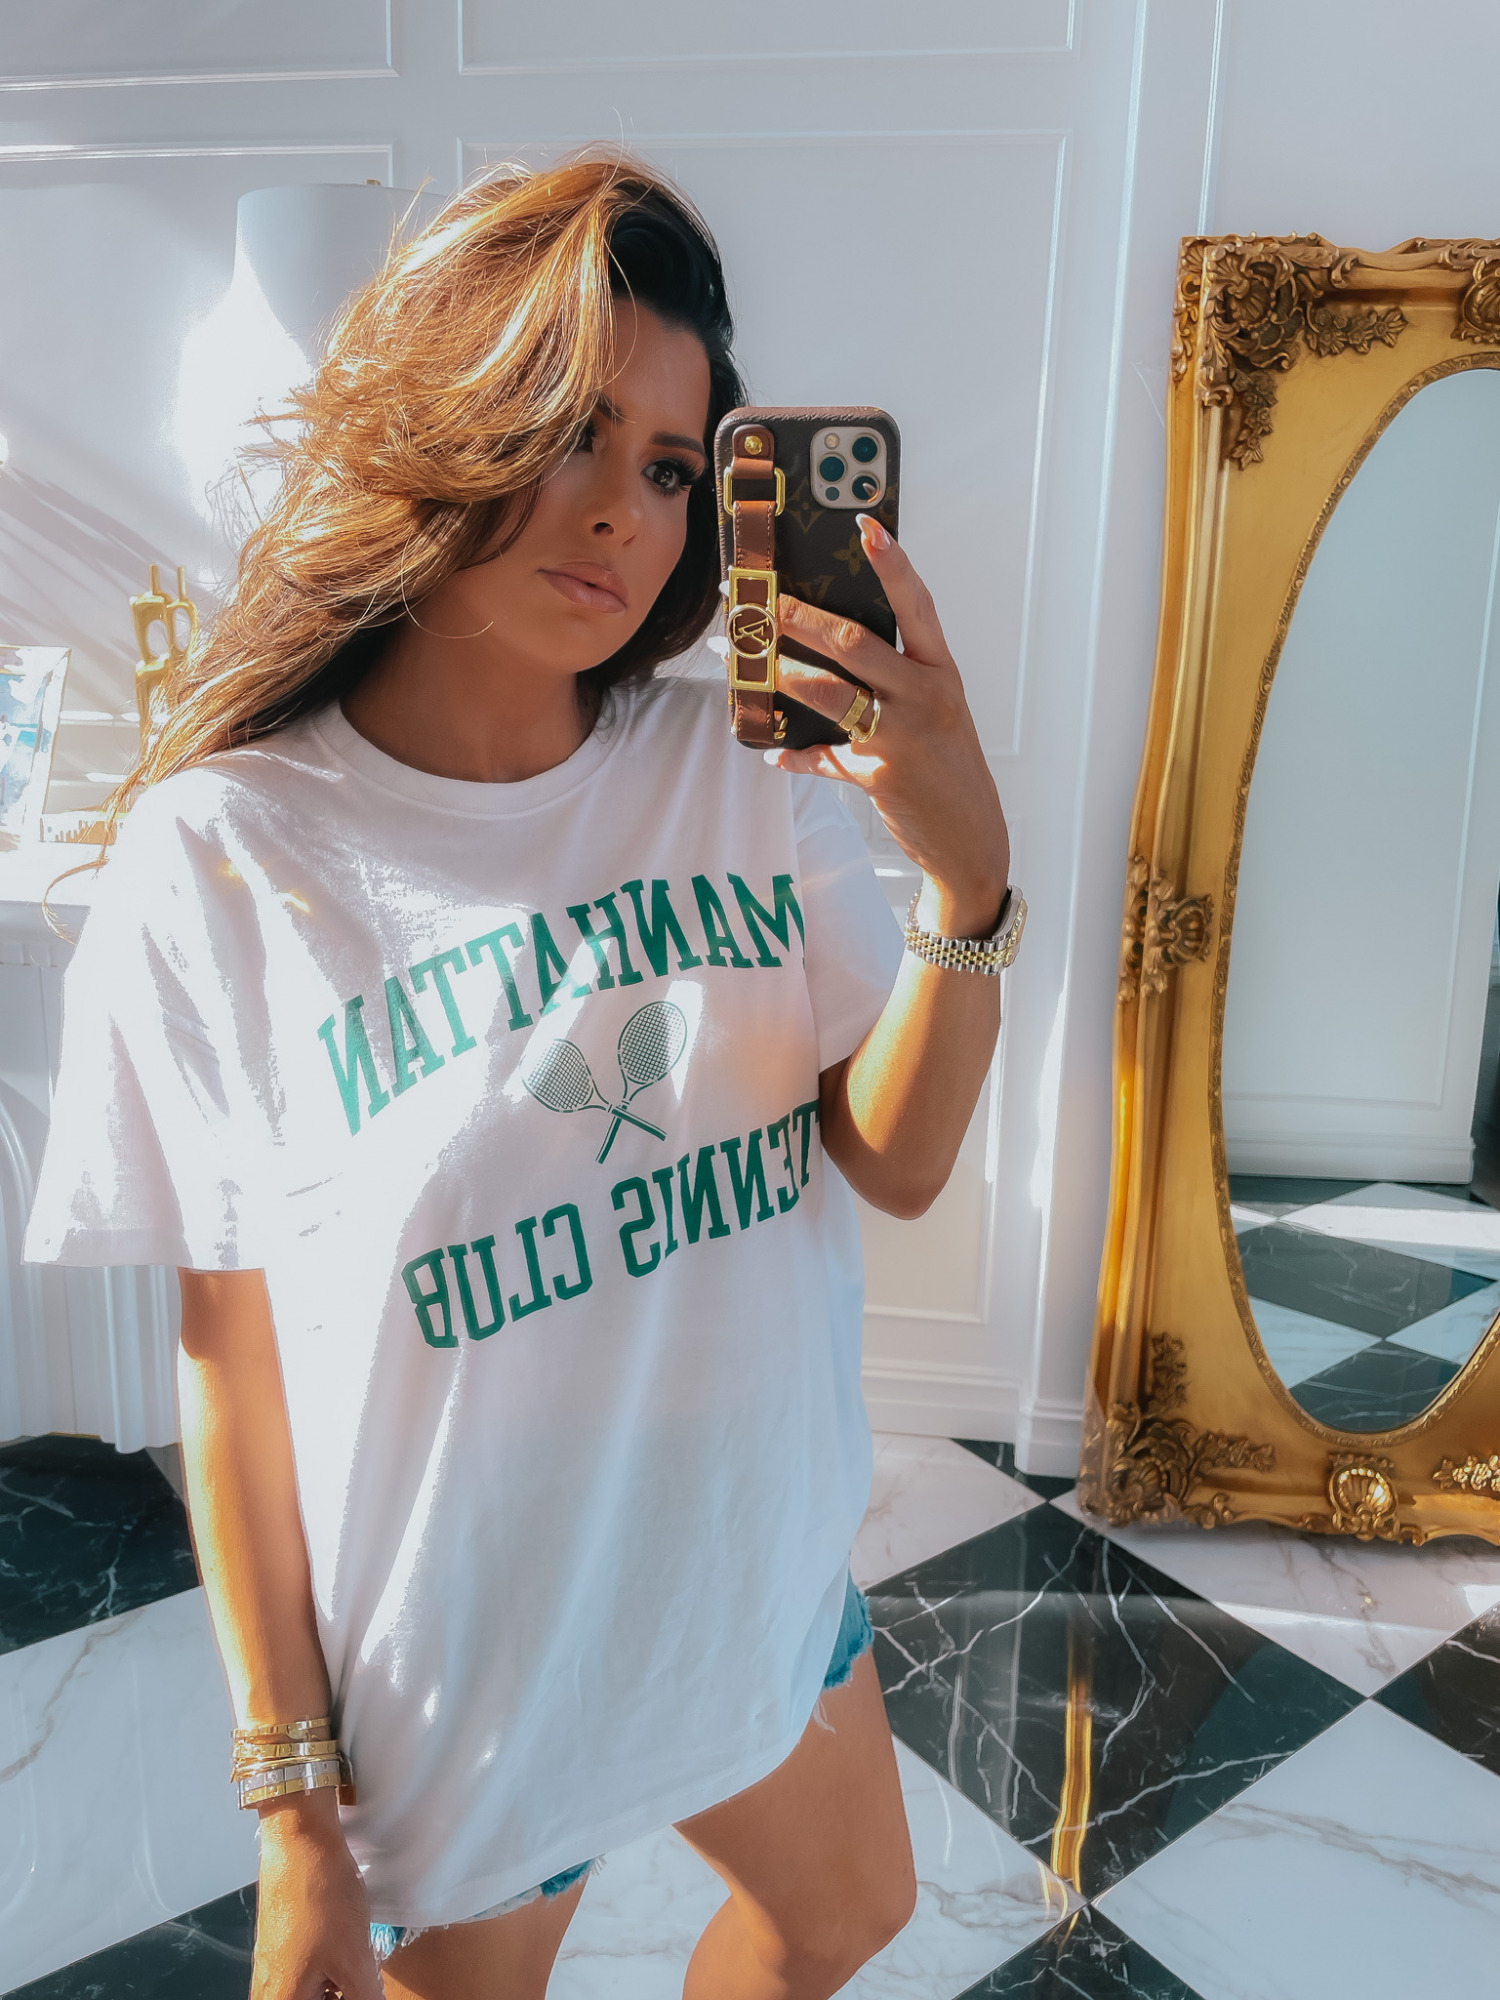 Casual-tee-shirt-abercrombie-ltk-day-sale-jean-shorts-summer-2021   LTK Sales by popular US fashion blog, The Sweetest Thing: image of Emily Gemma wearing a Manhattan Tennis Club t-shirt and jean shorts.